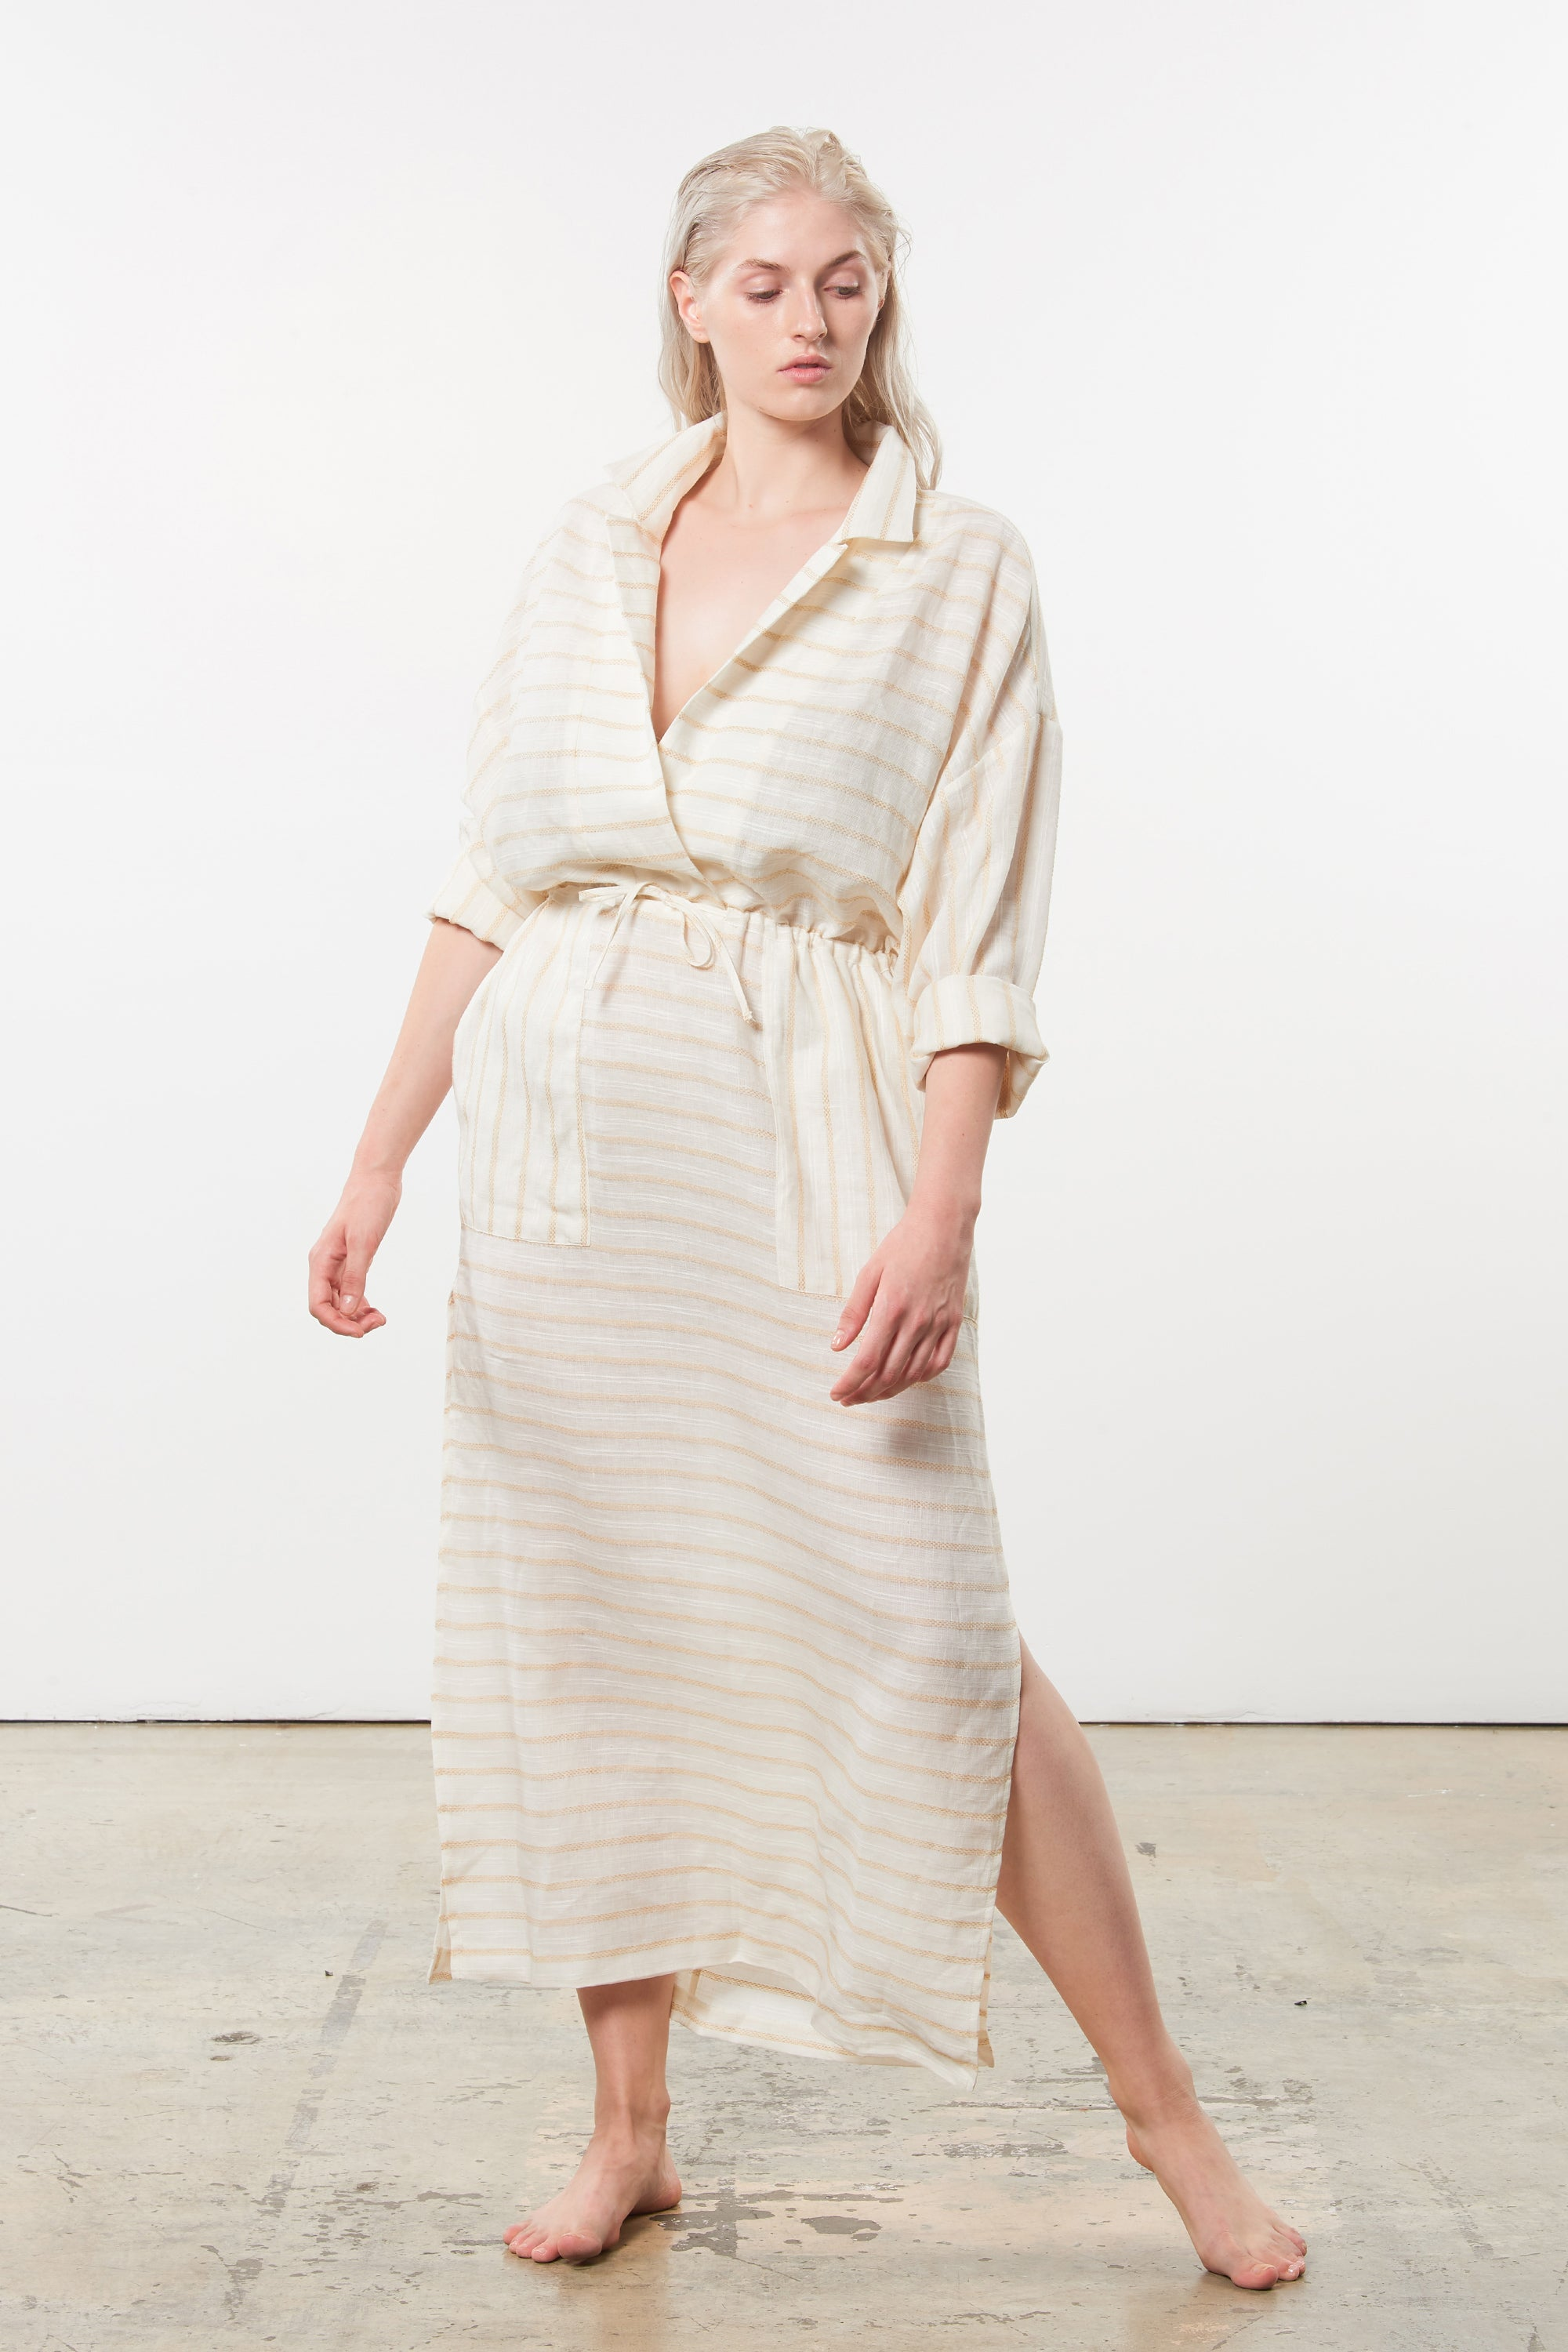 Mara Hoffman Extended Diega Coverup Dress in Ivory linen TENCEL Lyocell blend (front)